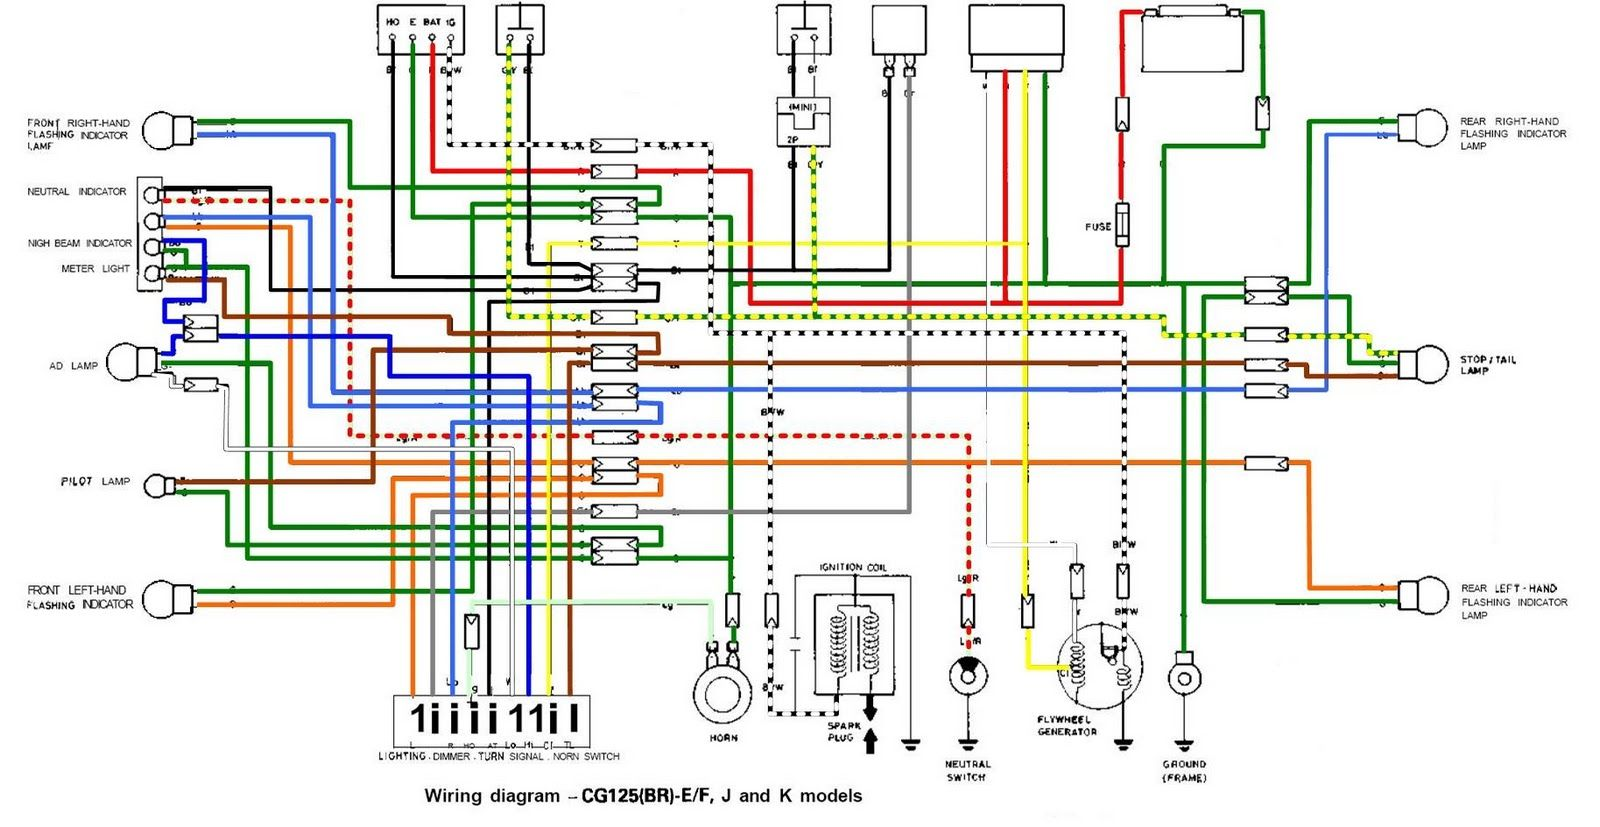 medium resolution of honda cg 125 wiring diagram best wiring diagram honda 125 motorcycle ignition wiring